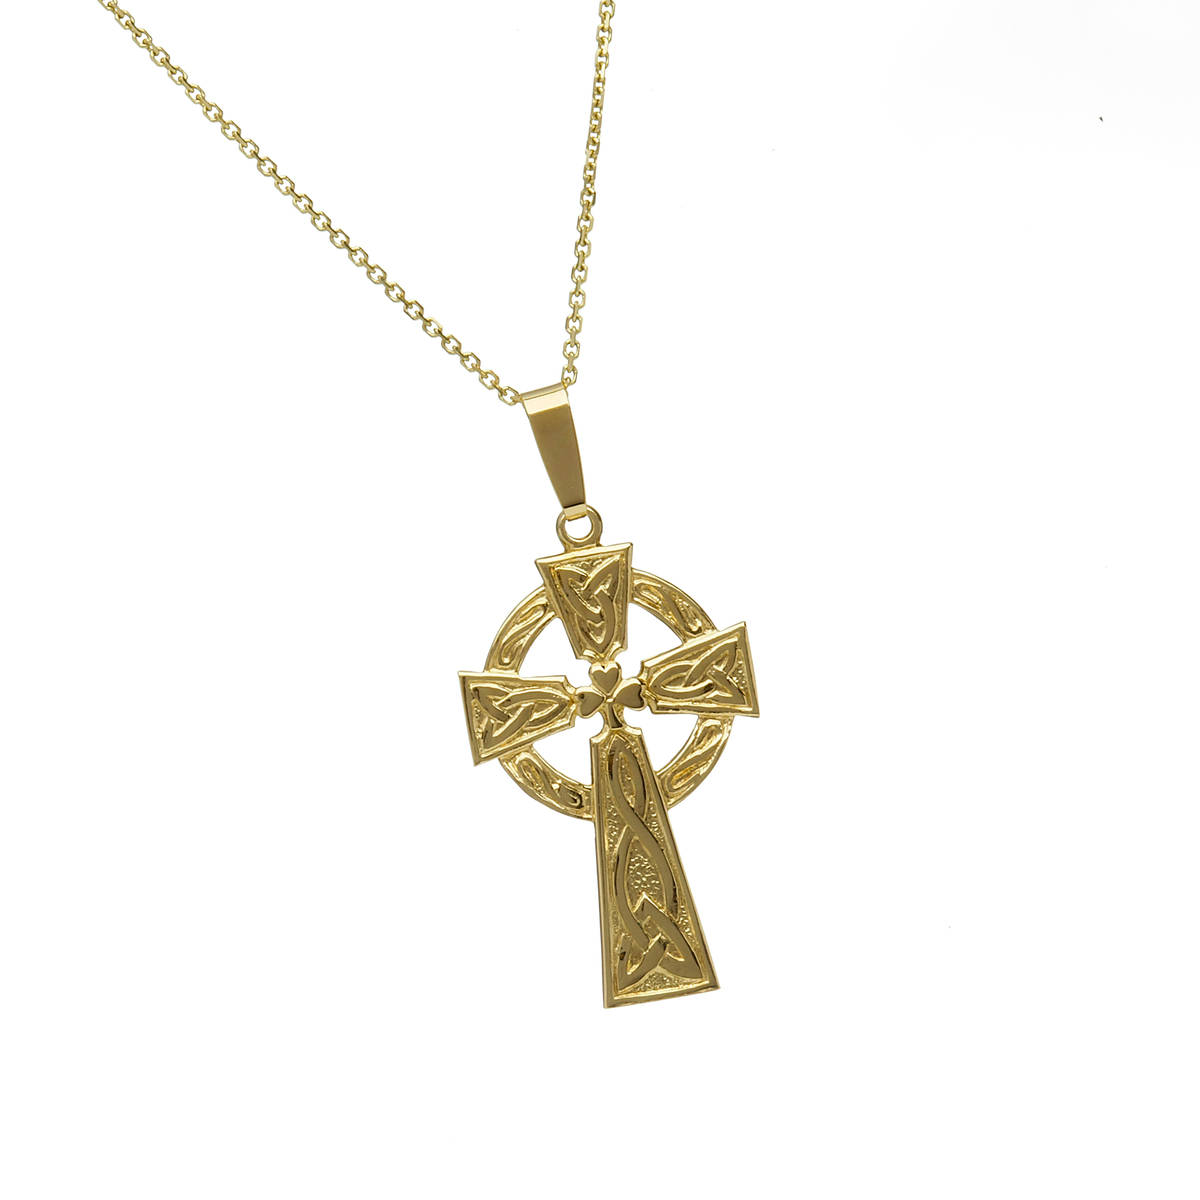 \n10 carat yellow gold Shamrock Celtic Cross pendant with engraved back.\nA classic Cross also available in white gold or rose gold, if you prefer.\nJust leave a note in the comment box on checkout.